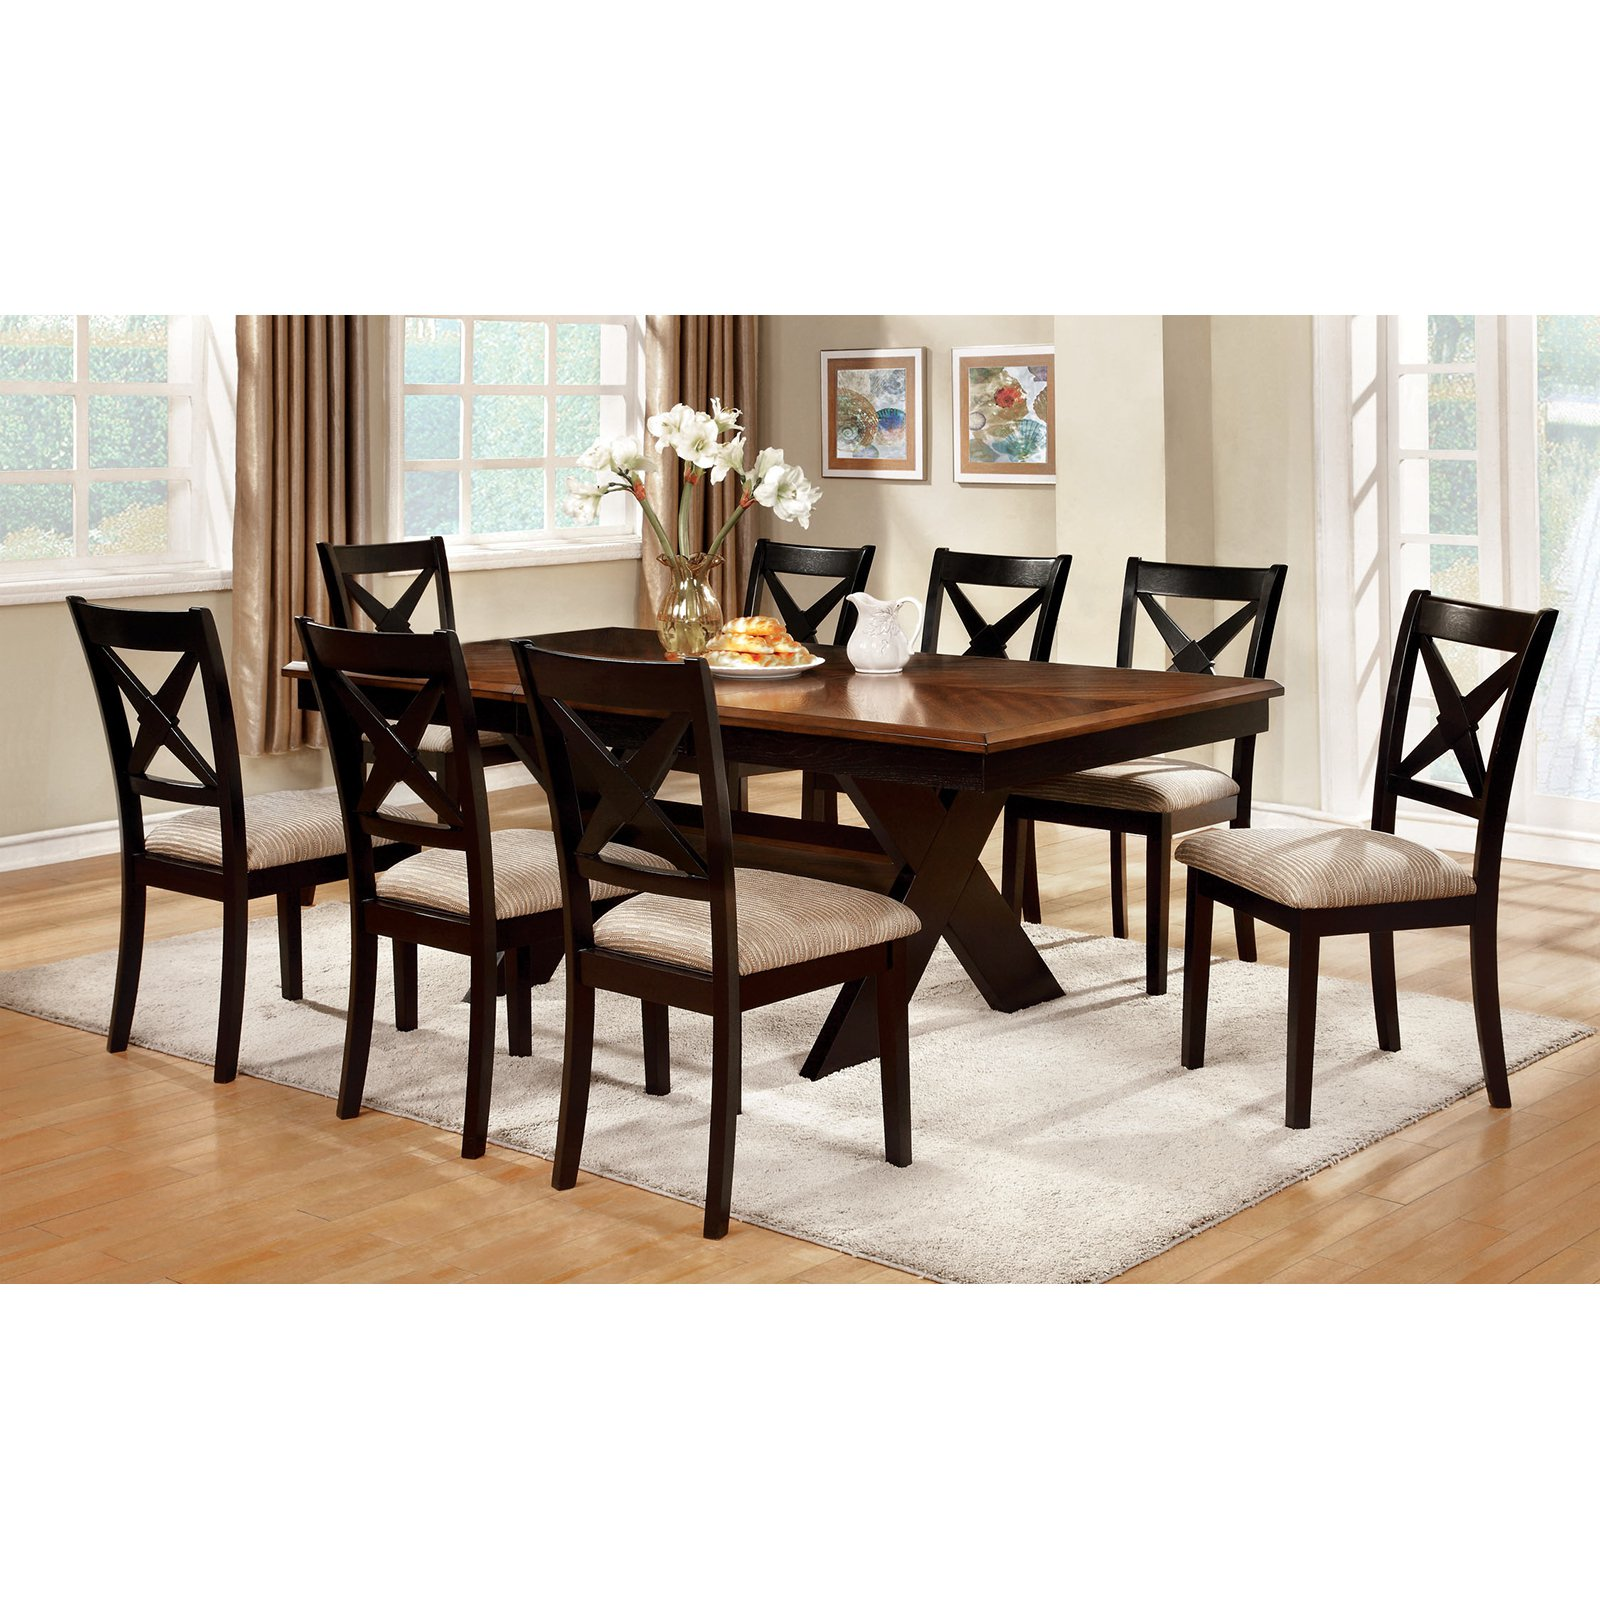 Furniture of America Argoyle Trestle Dining Table - Dark Oak / Black